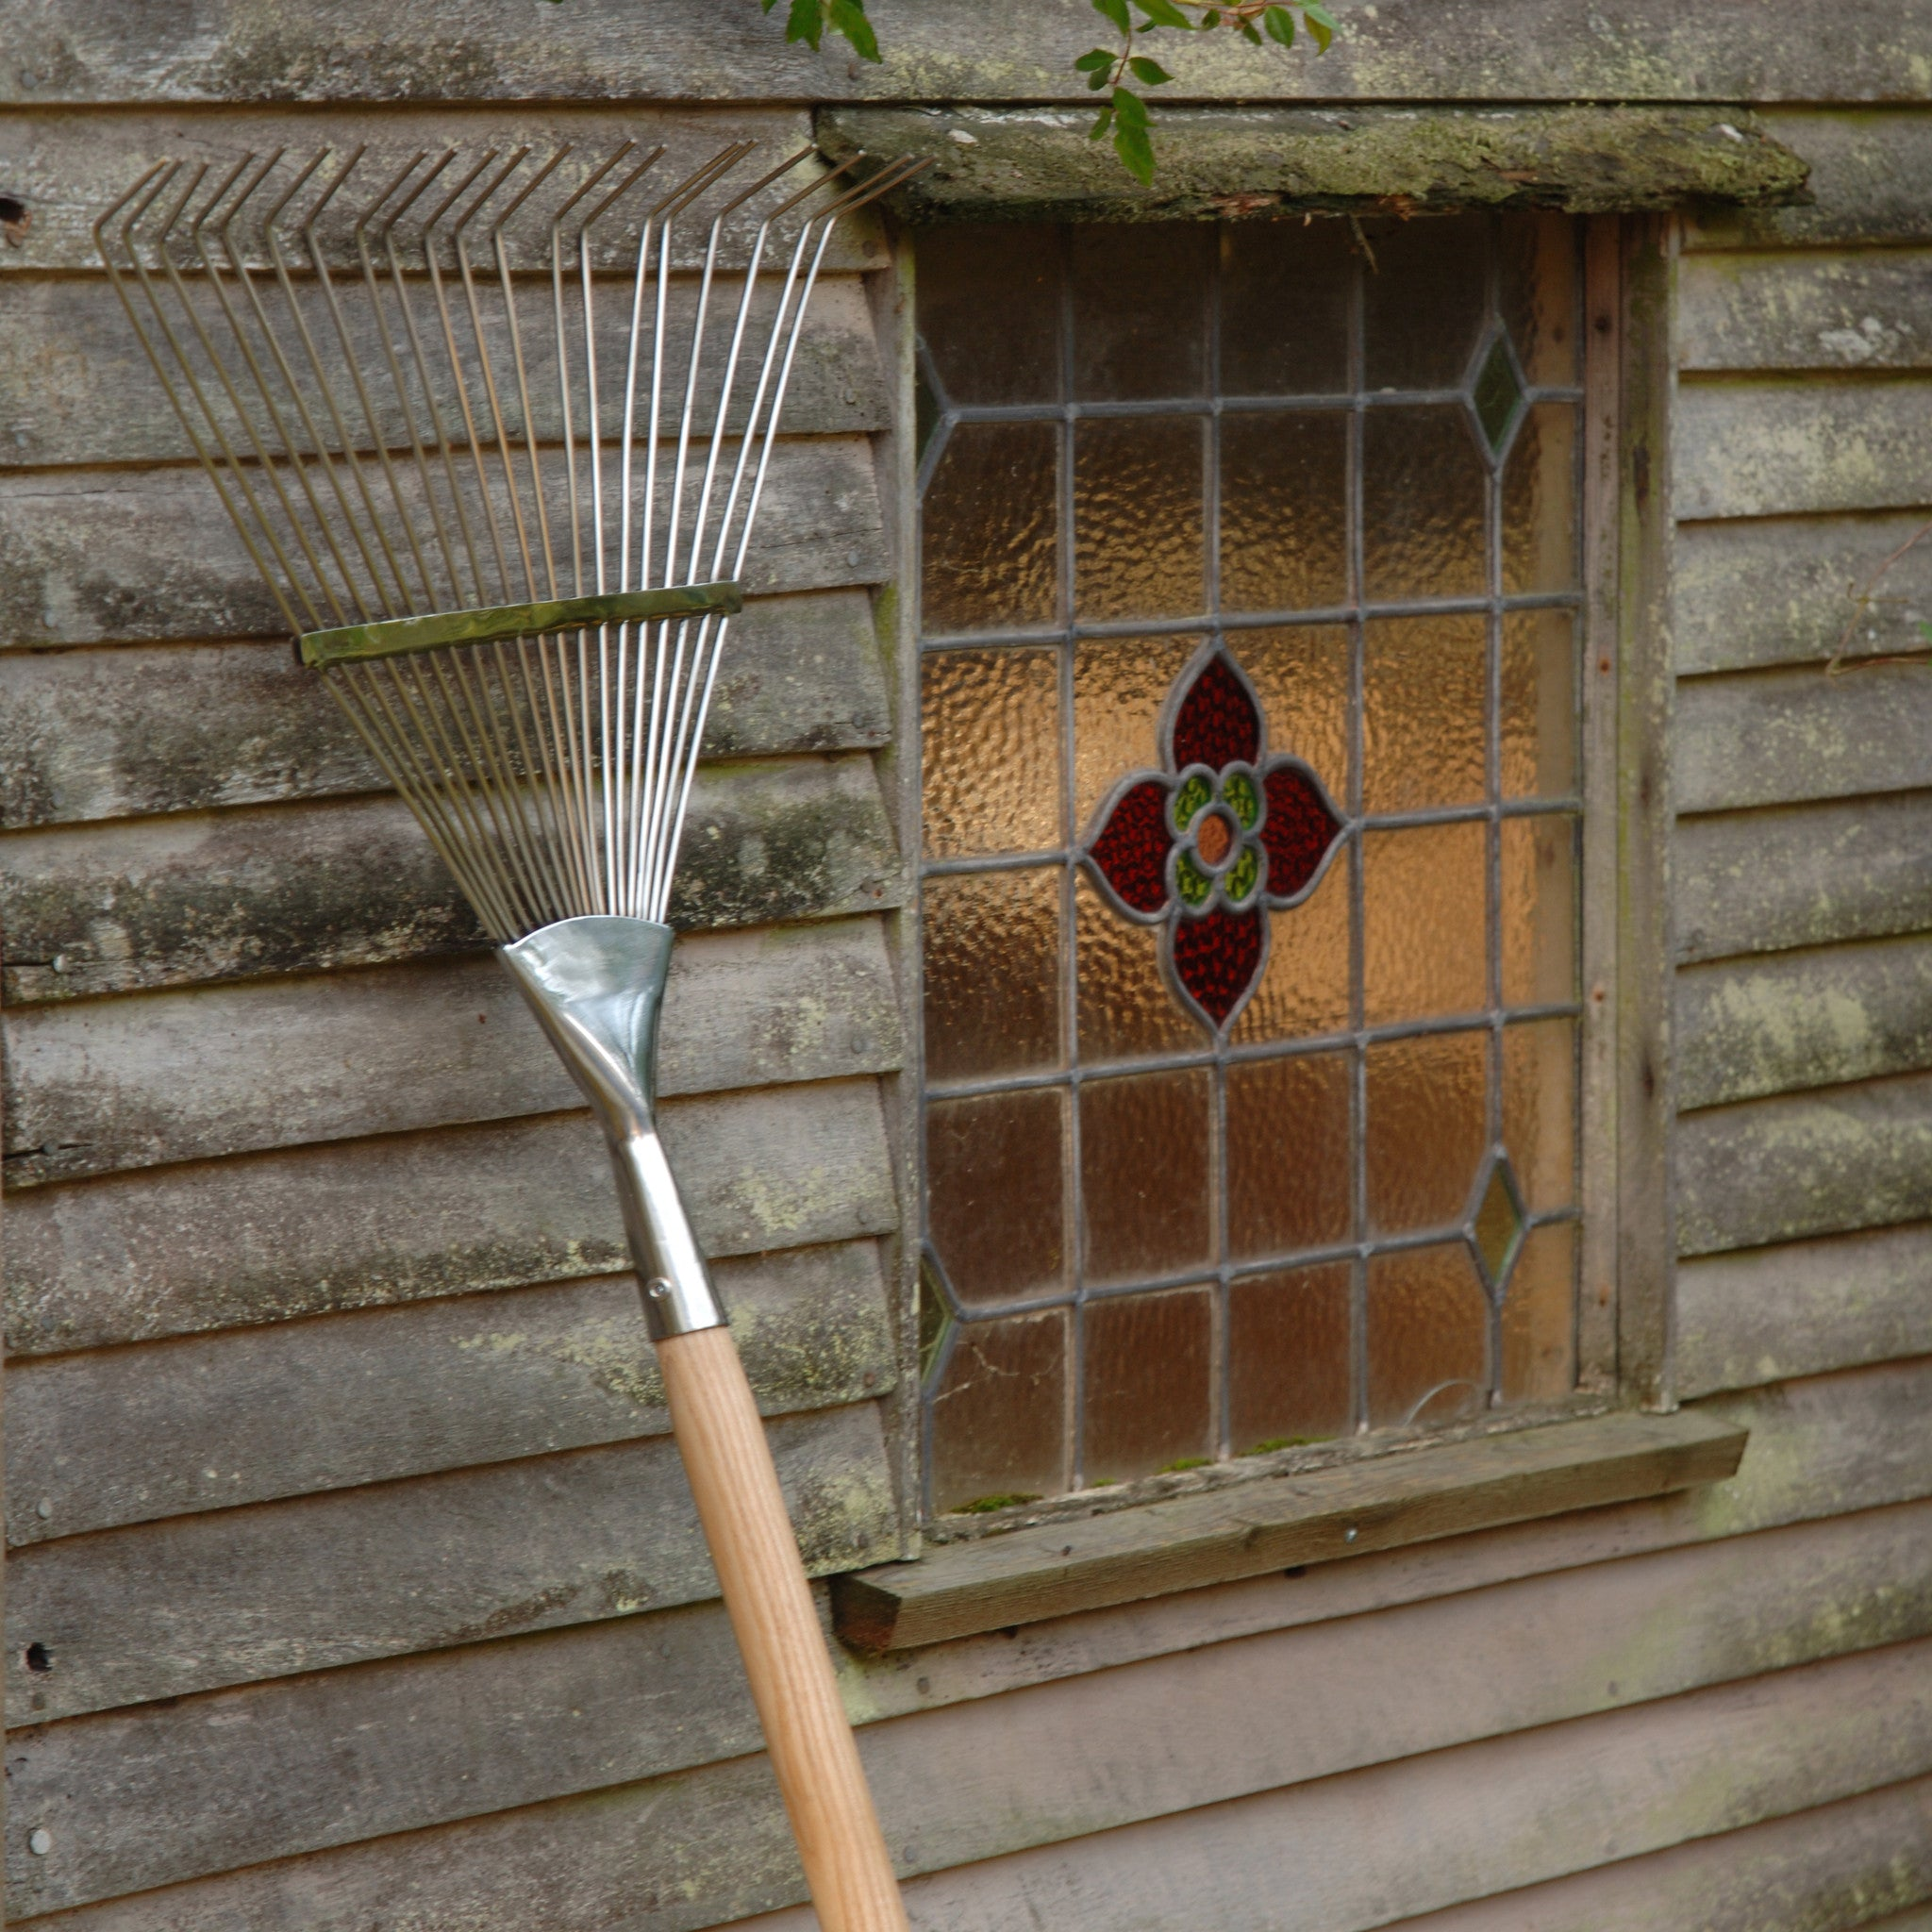 Flexi Tined Lawn Rake - Stainless Steel - The Potting Shed Garden Tools